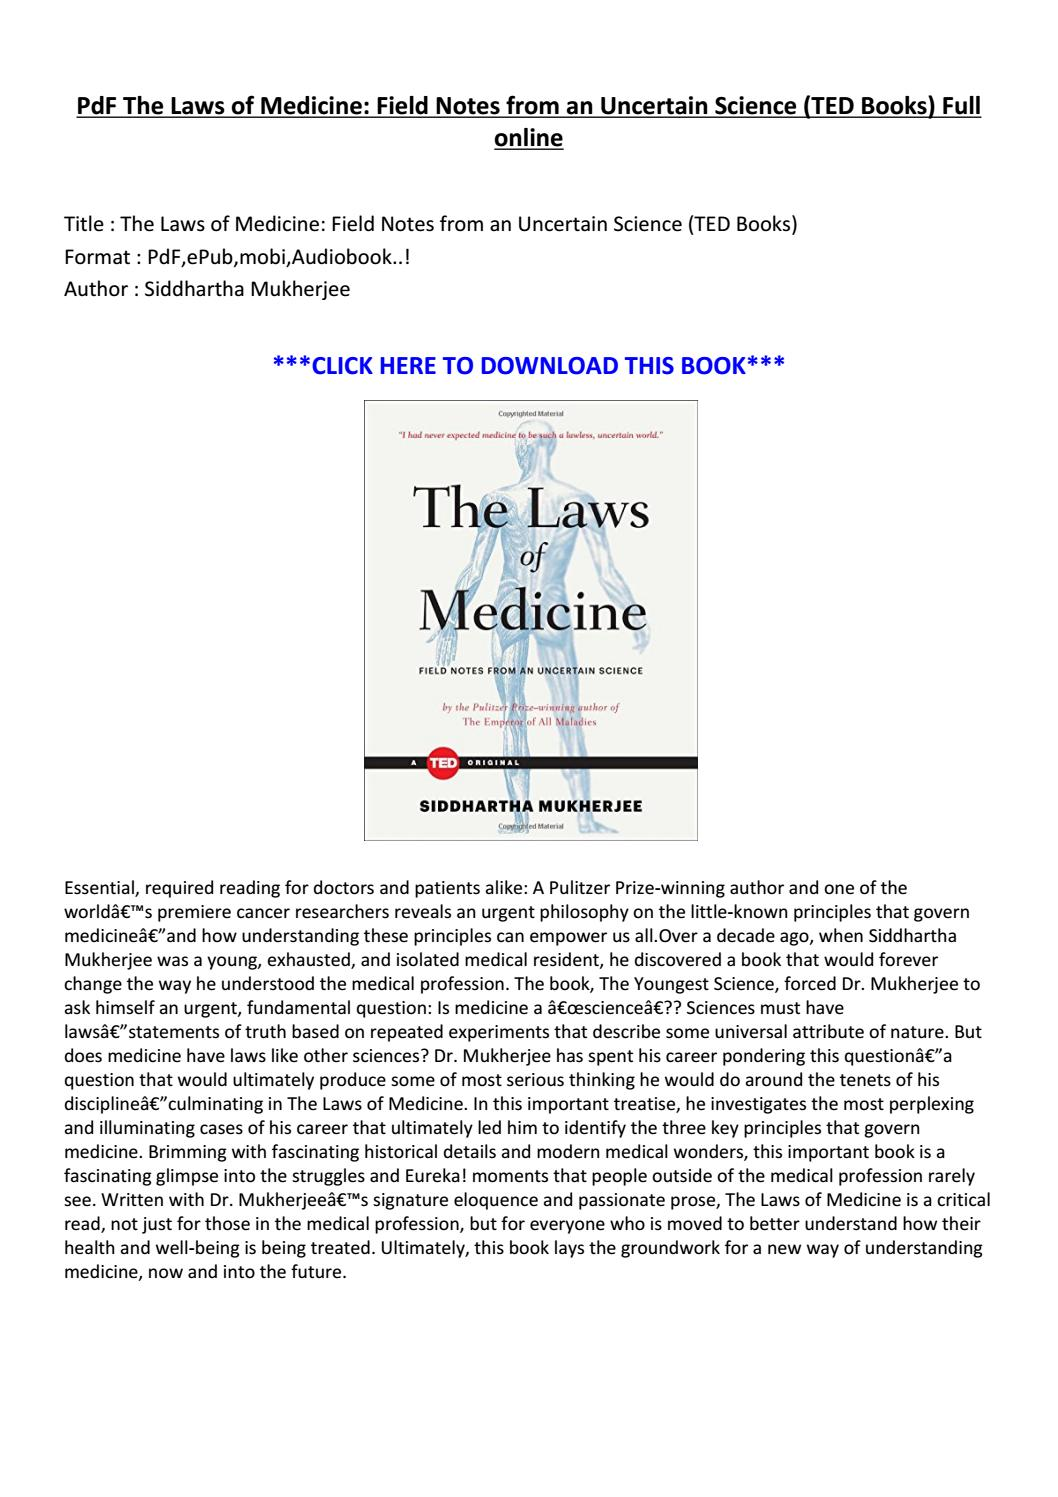 the laws of medicine field notes from an uncertain science ted books english edition